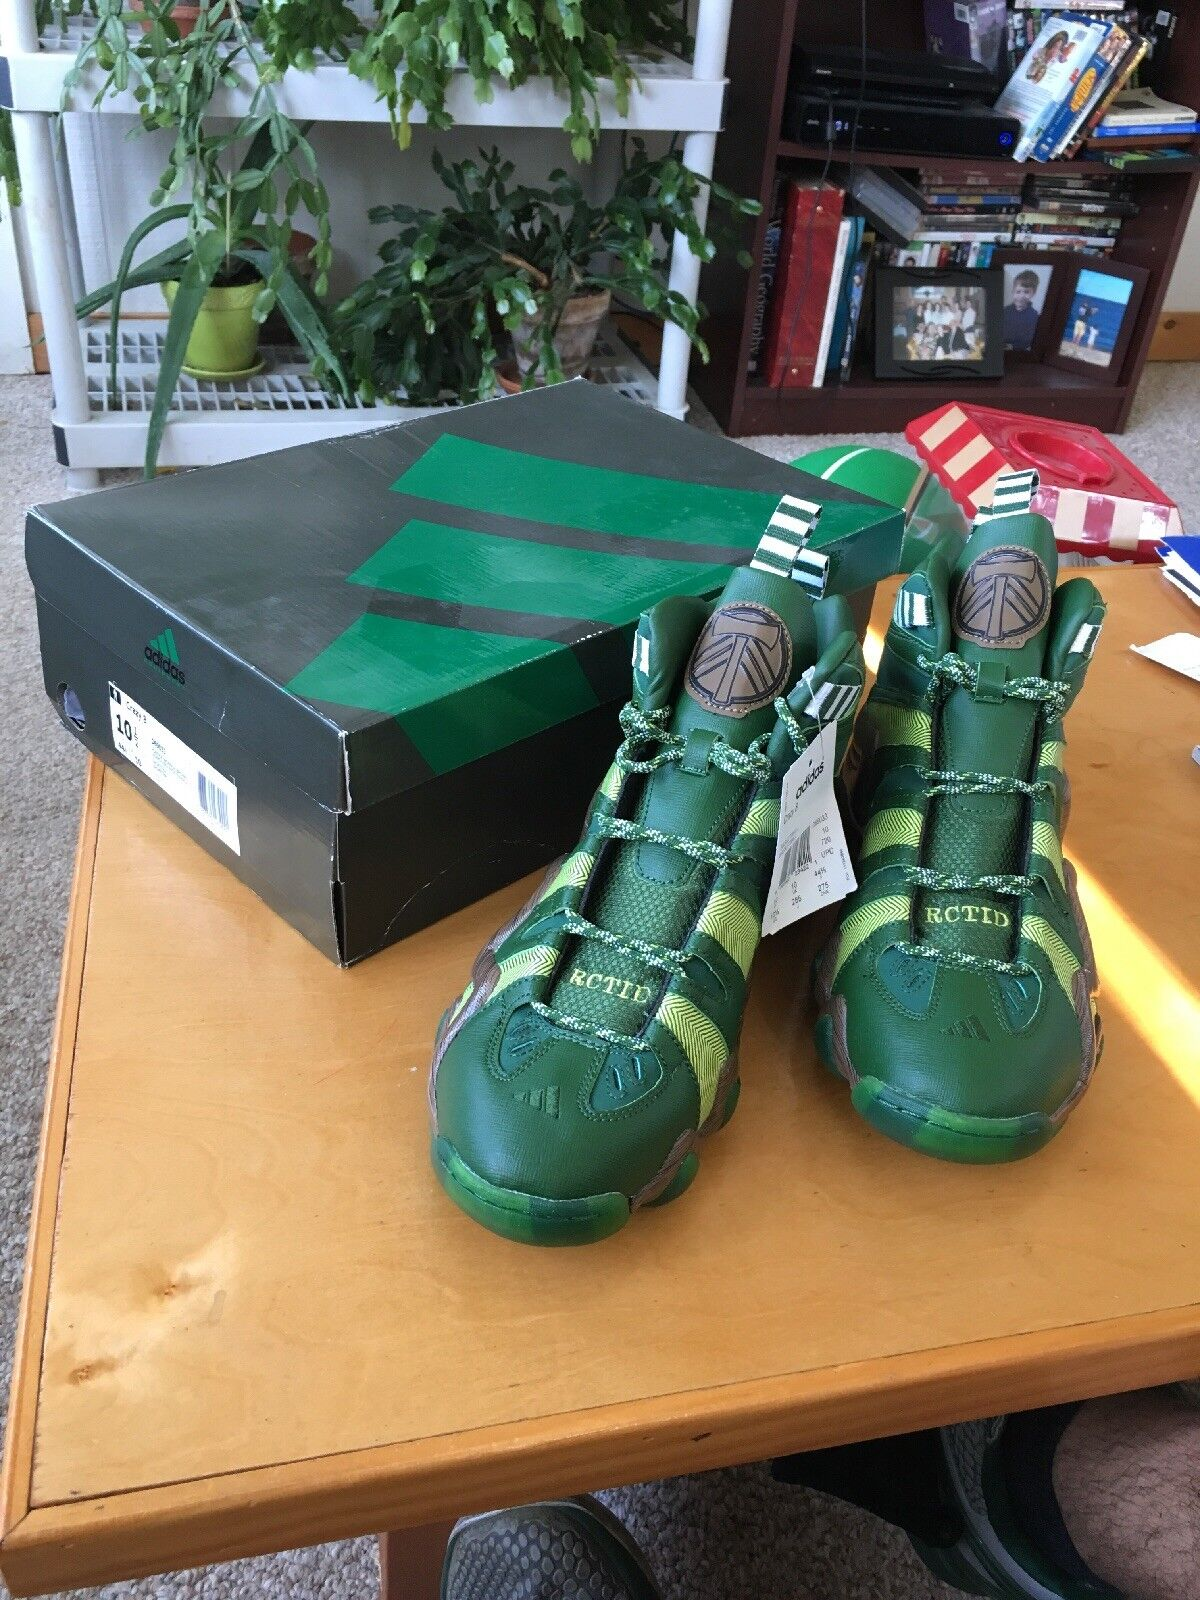 NEW ADIDAS CRAZY 8 PORTLAND TIMBERS SiZE MEN'S 10.5  MLS RCTID ARMY D69033 GREEN